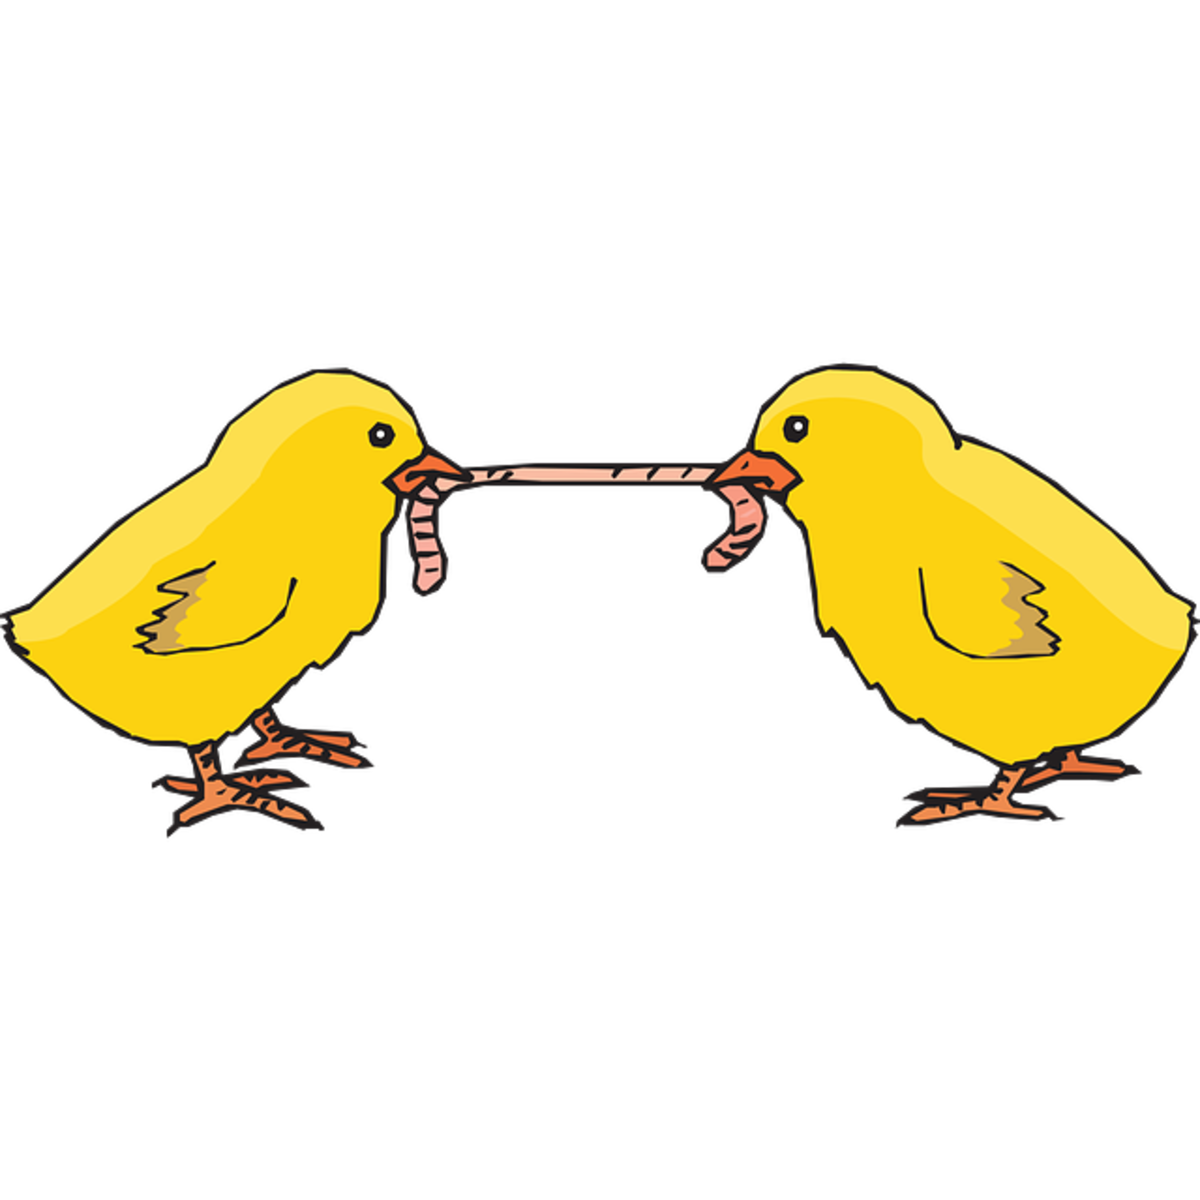 Conflict in the workplace is like a tug-of-war between two people.